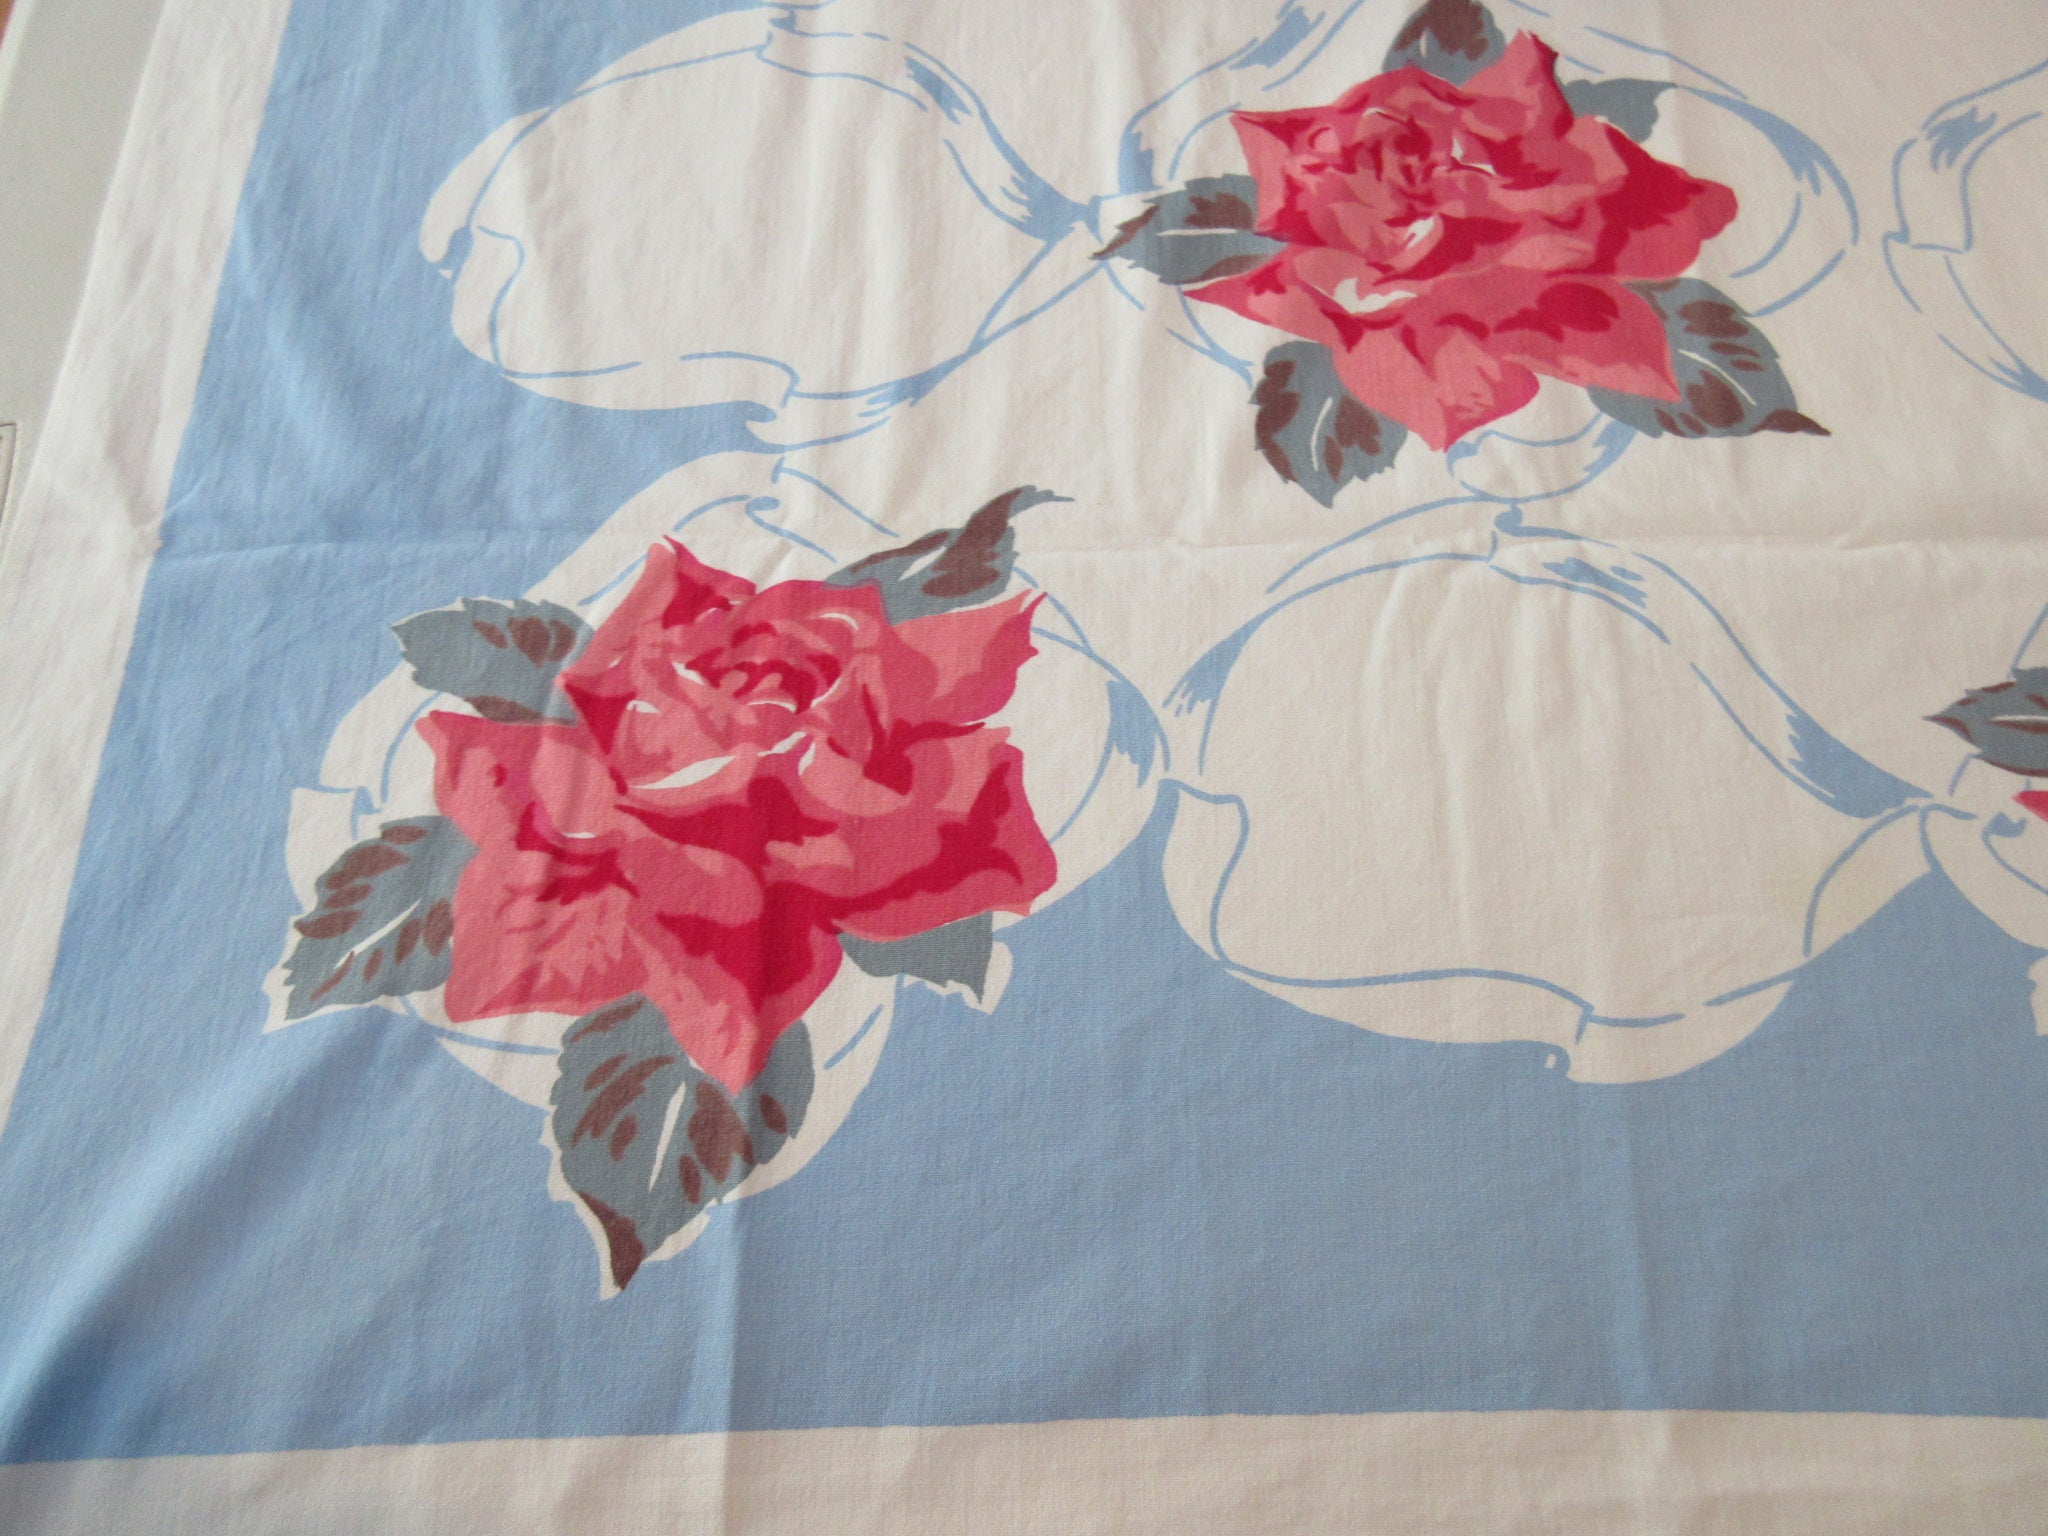 Pink Roses on French Blue Cutter? Floral Vintage Printed Tablecloth (51 X 45)